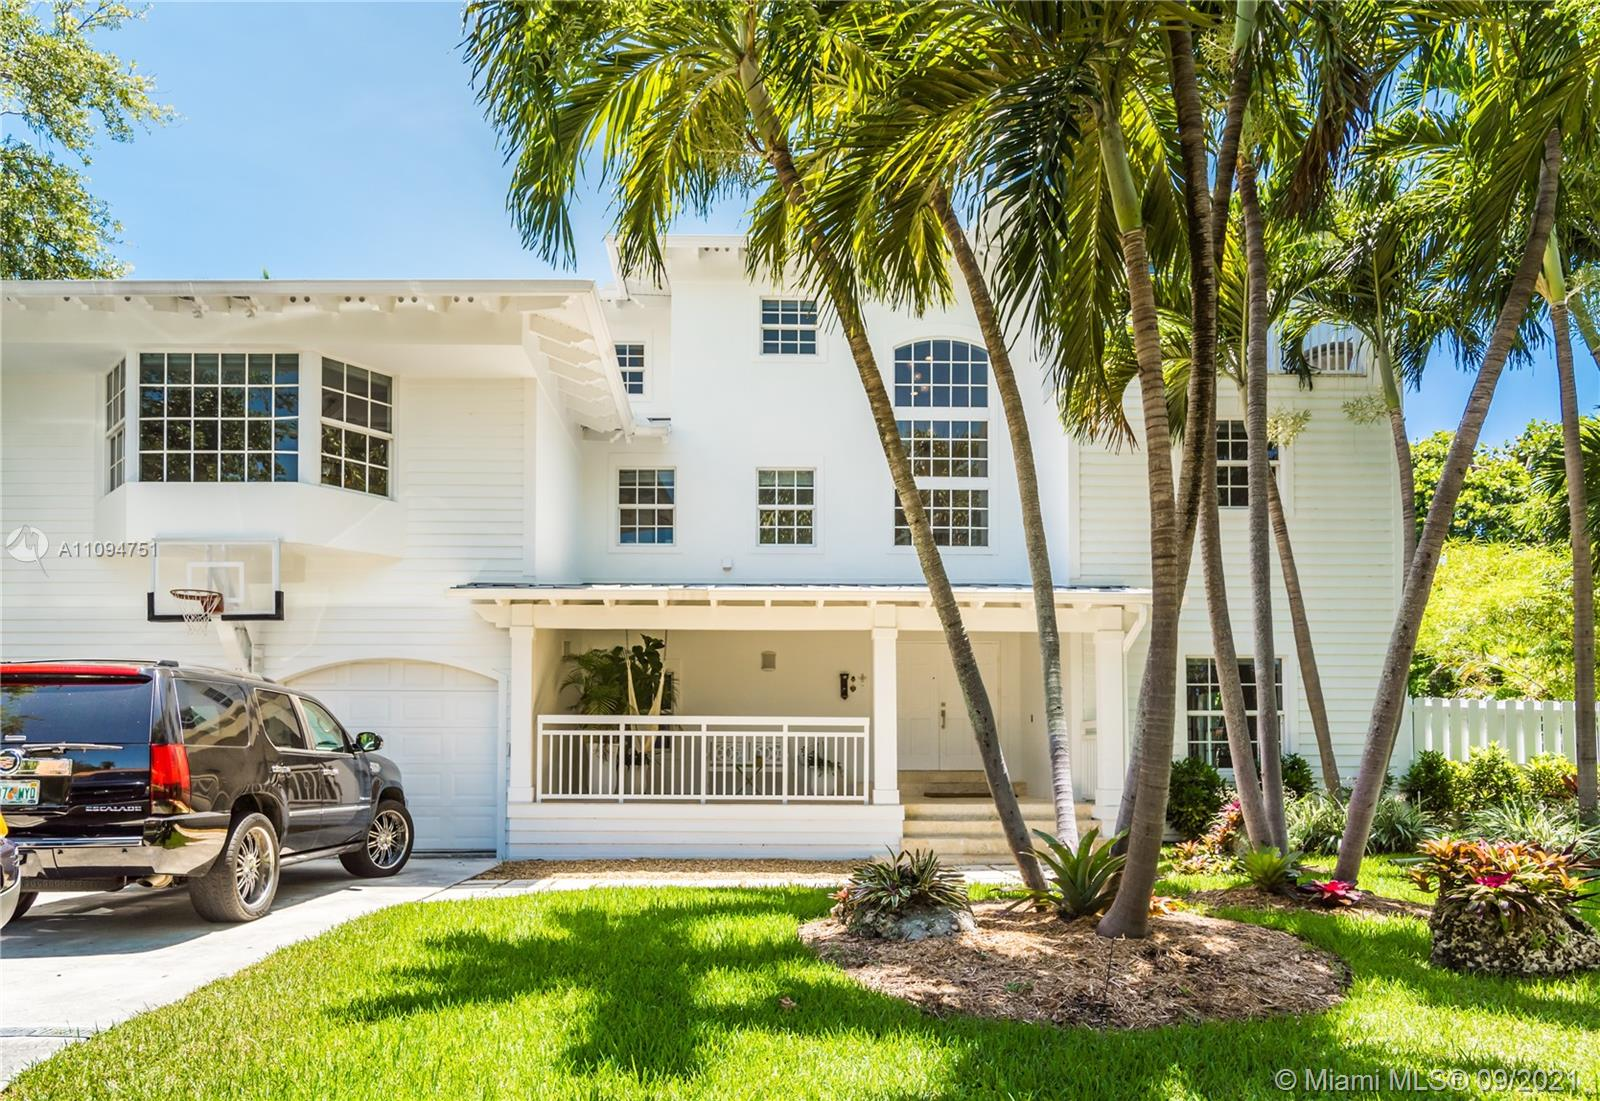 325 Pacific Rd, Key Biscayne, Florida 33149